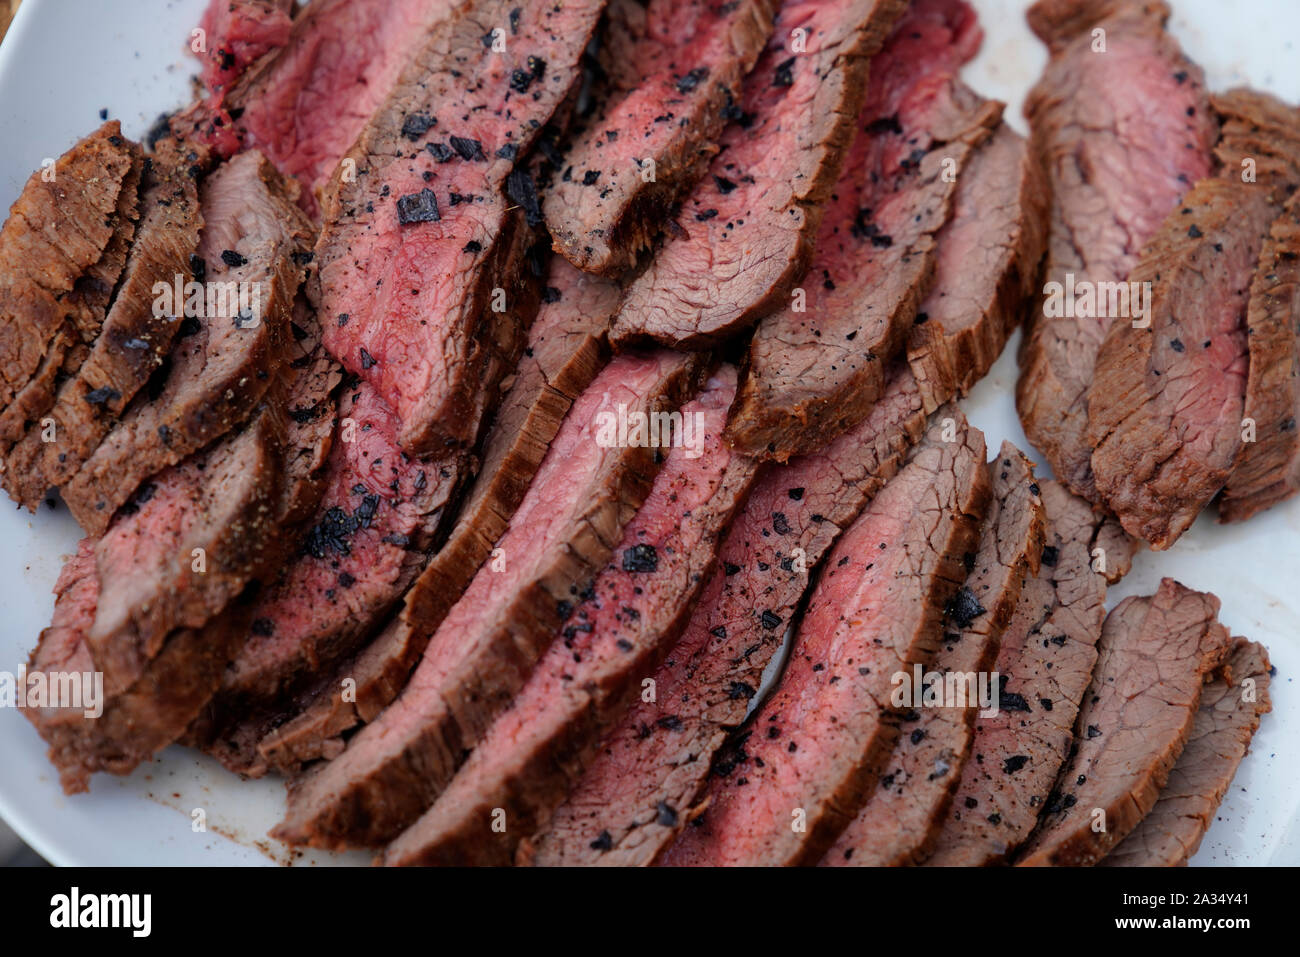 Detail of sliced grilled meat-grilled flank steak, Karlovy Vary, Czech Republic, Europe Stock Photo